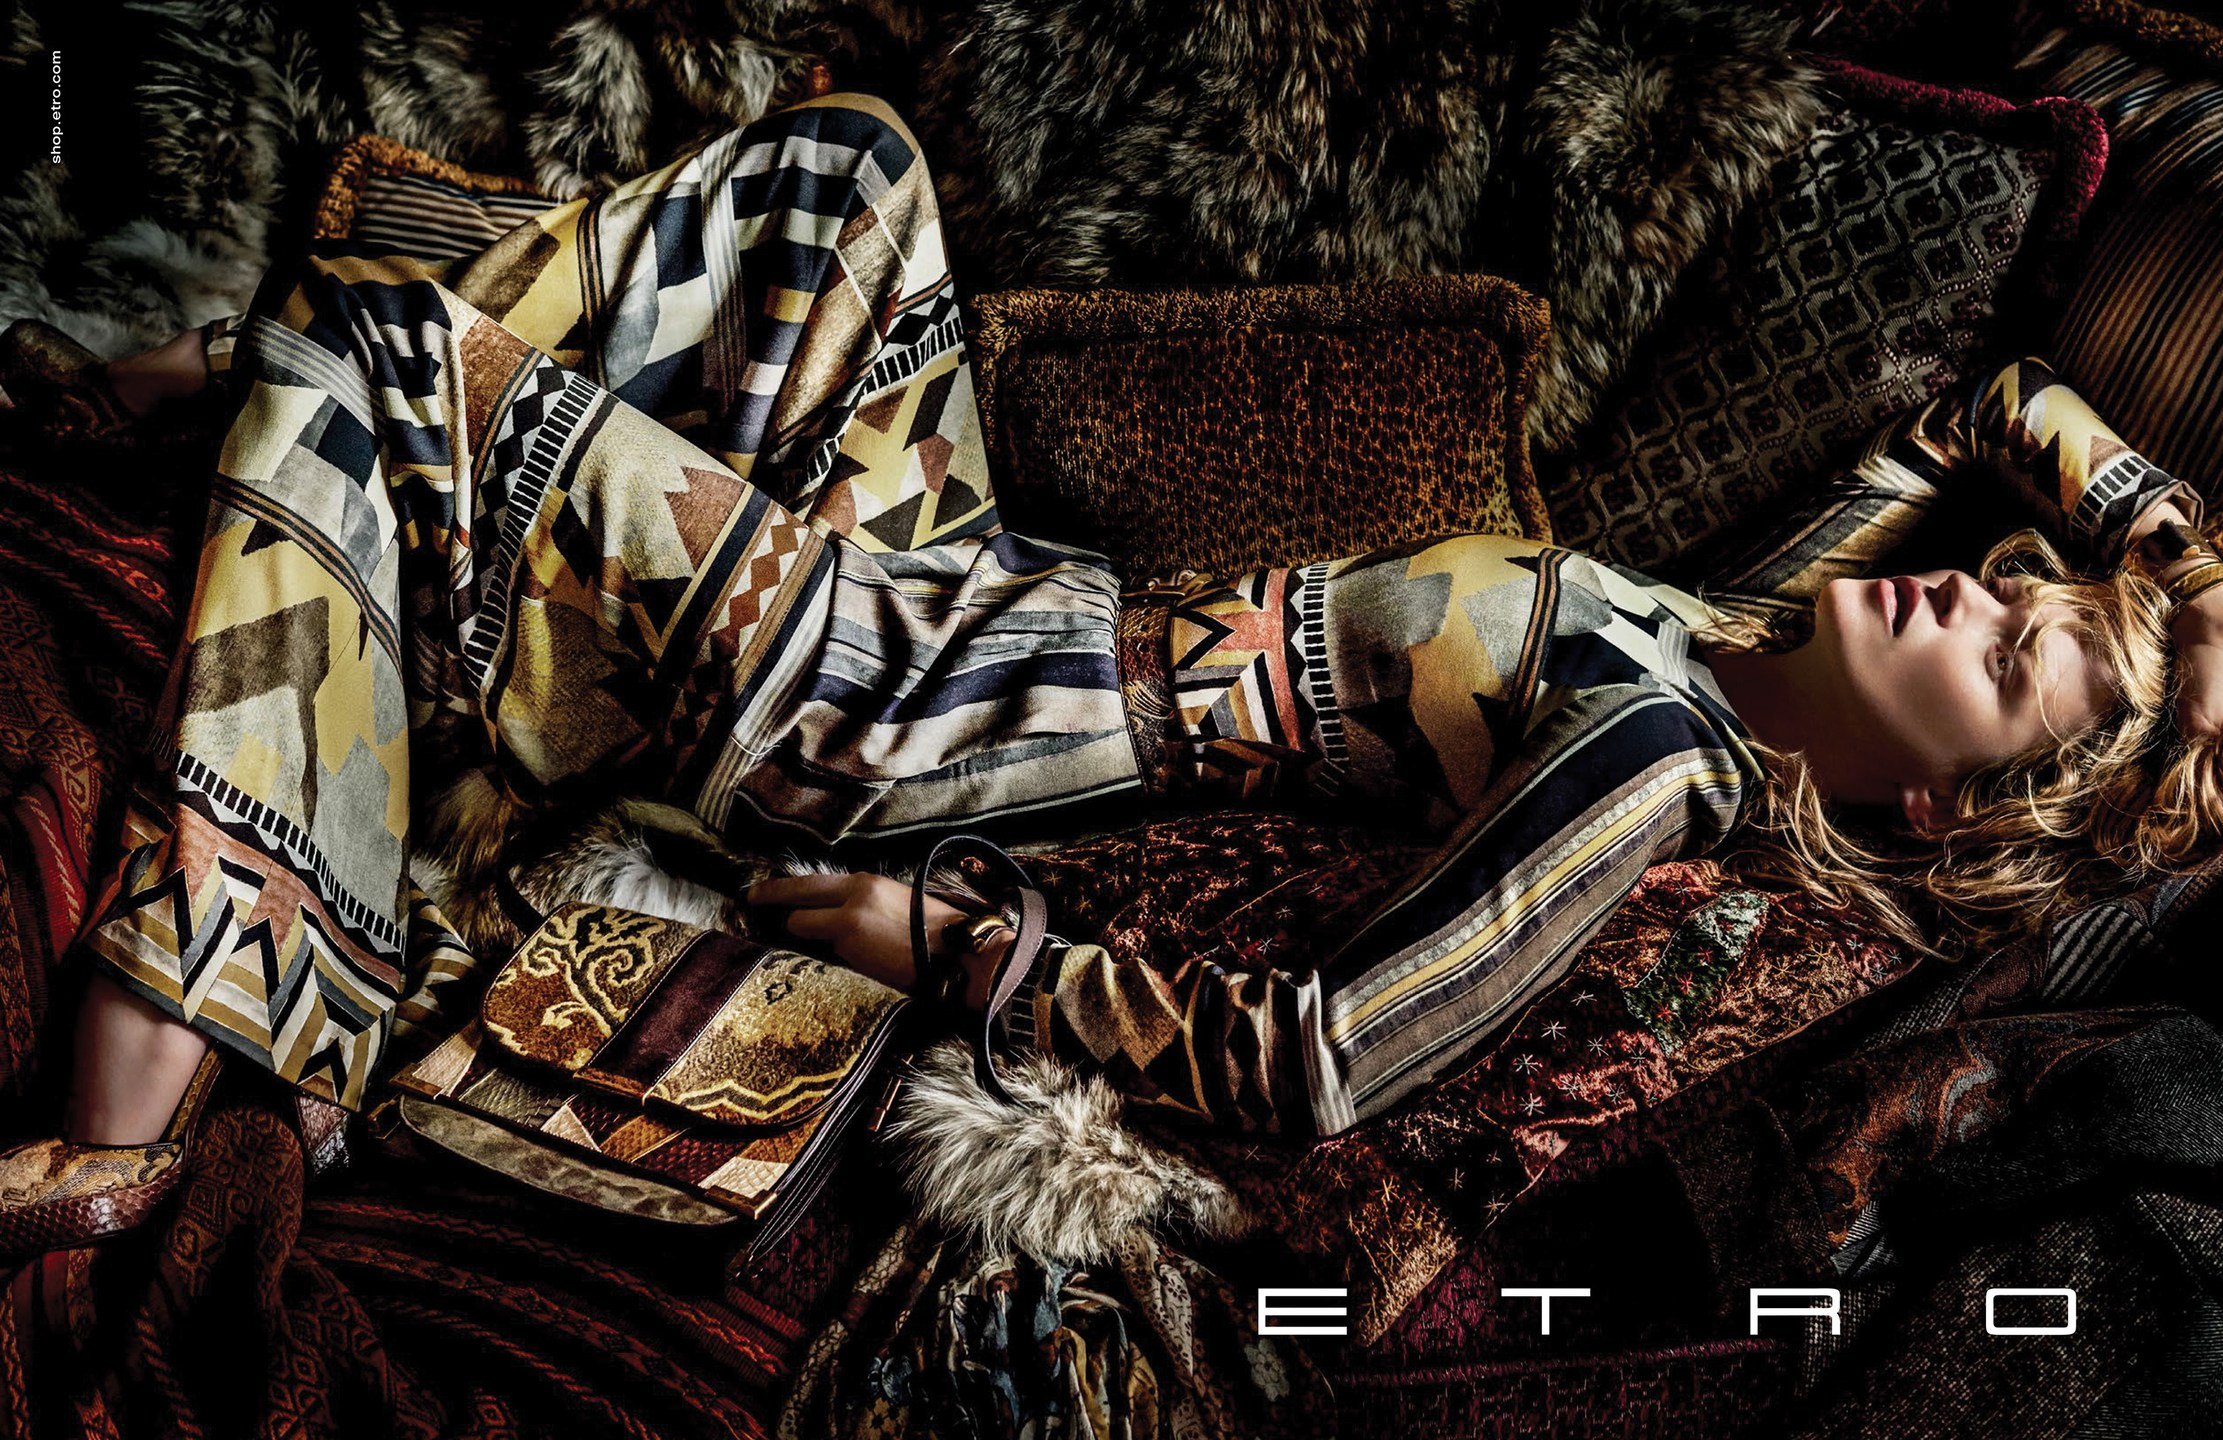 Moss kate for etro fall campaign recommend dress for summer in 2019